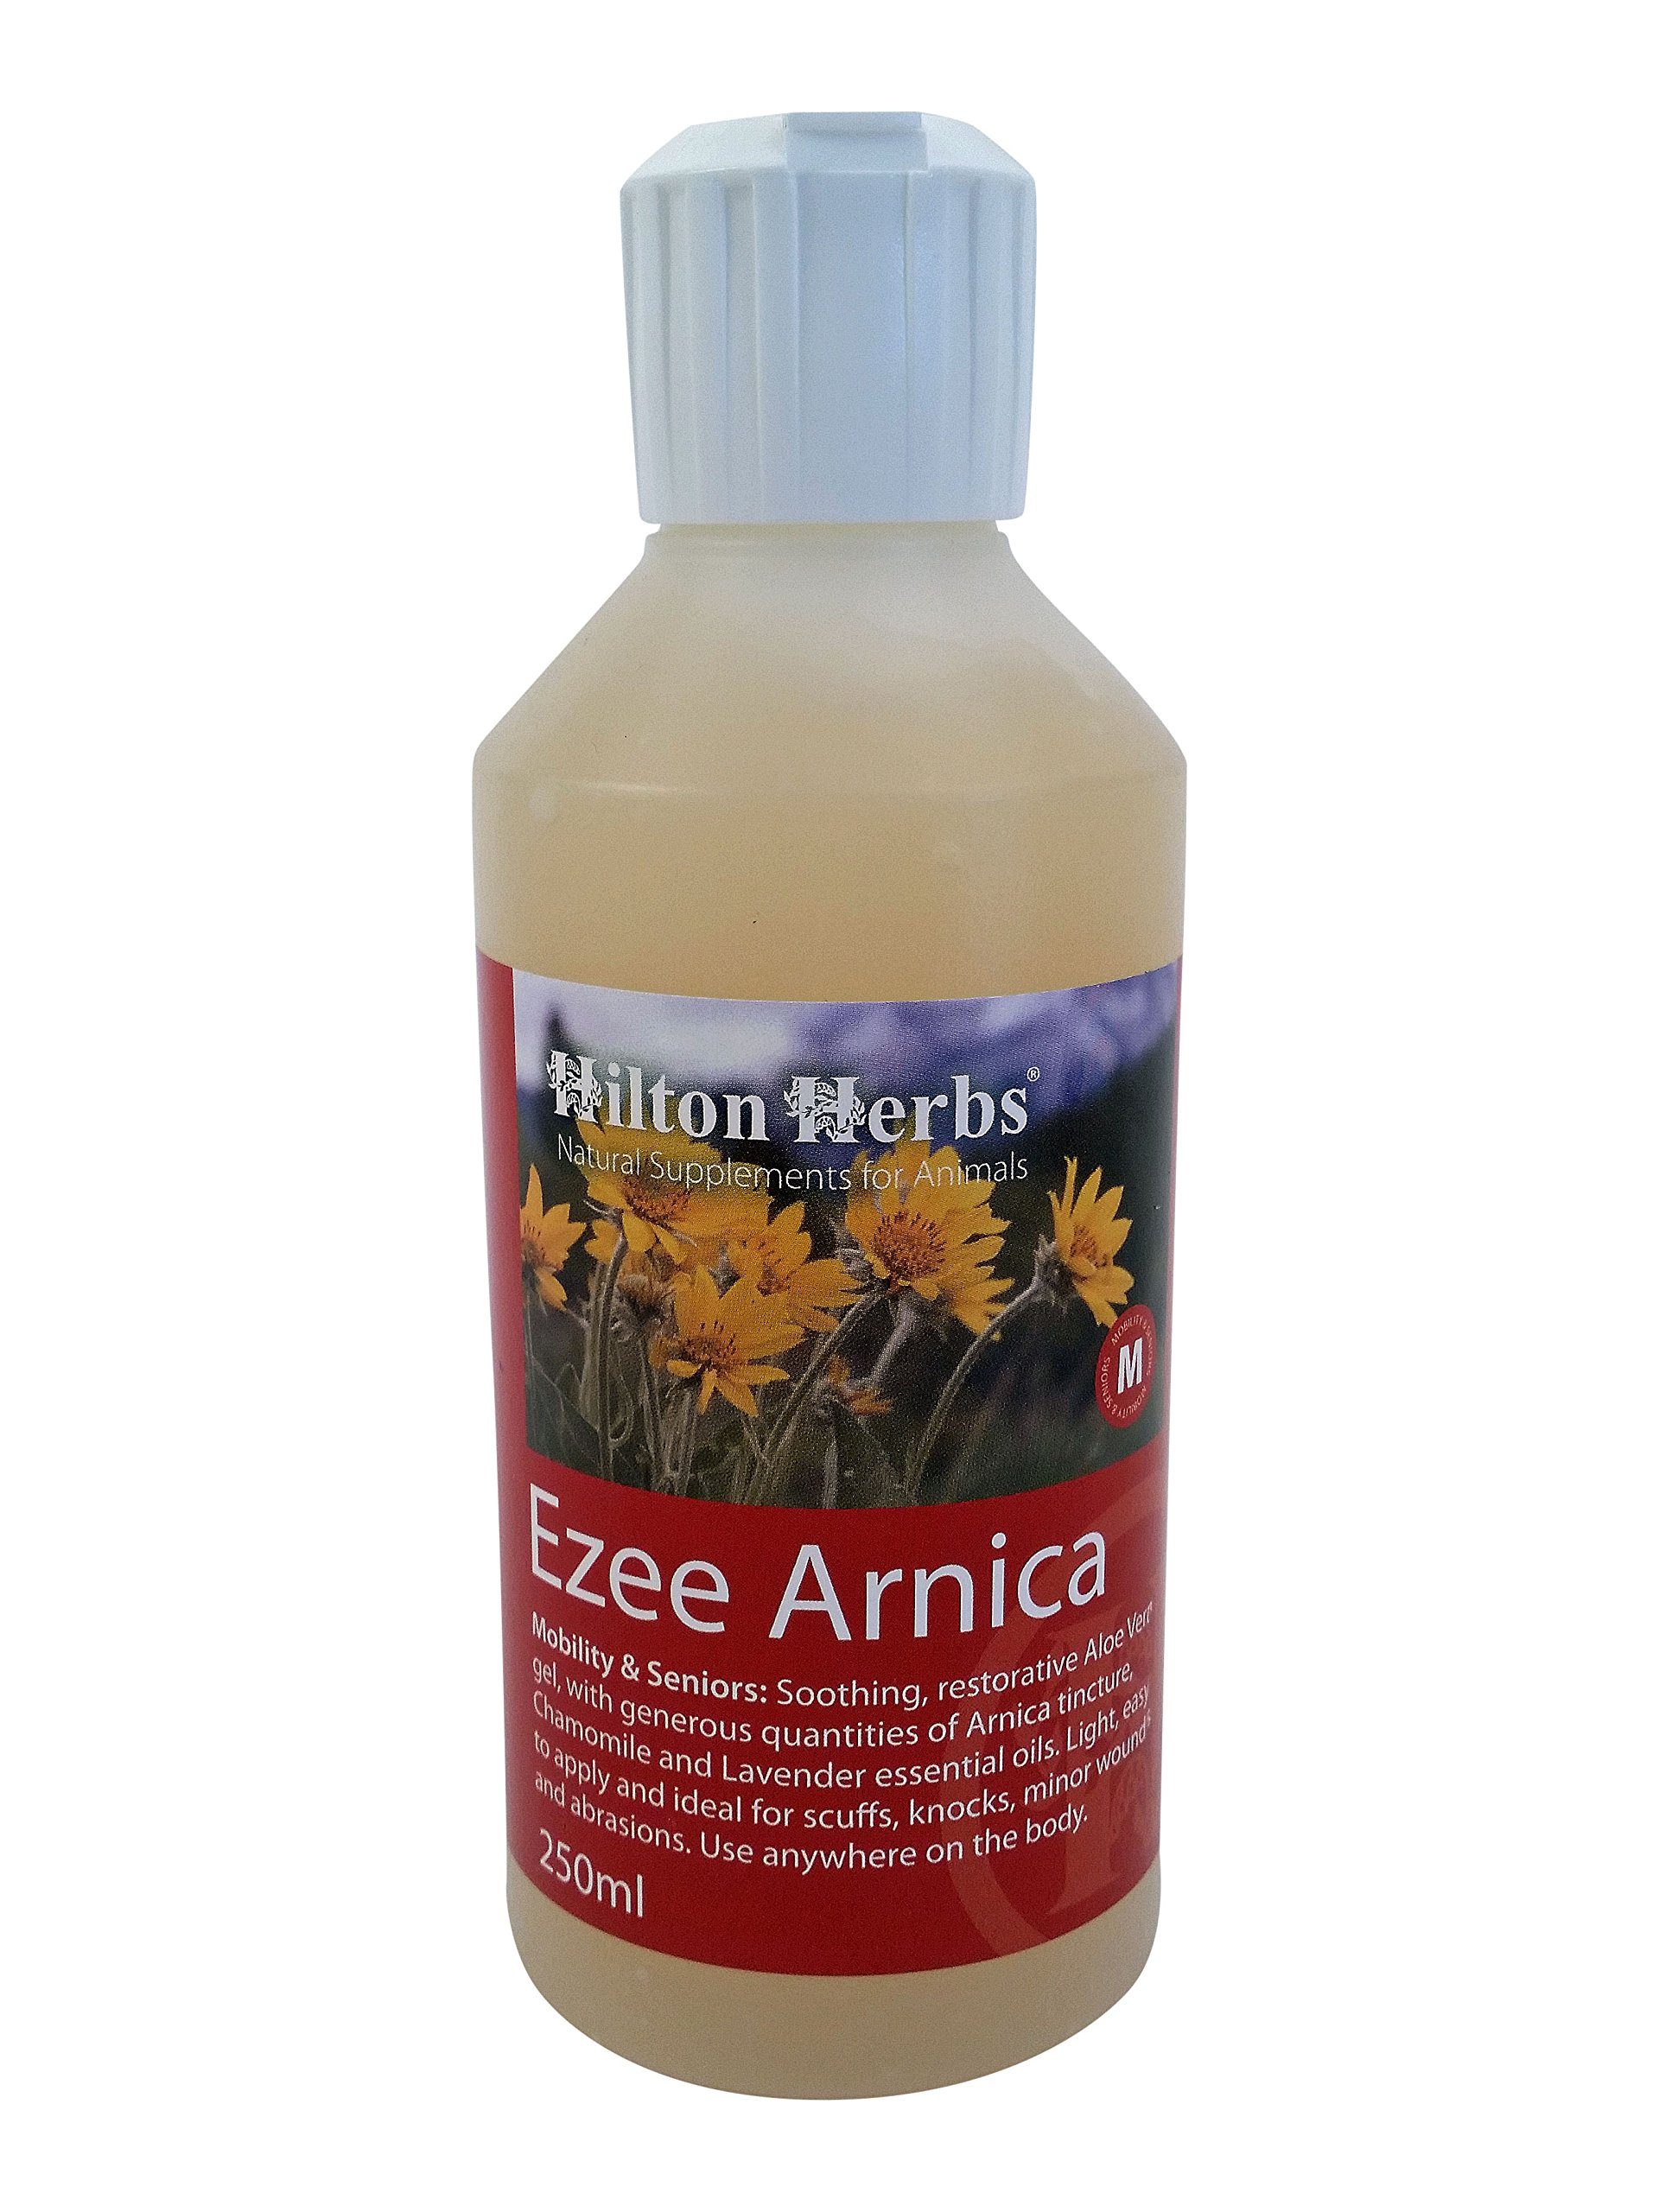 Hilton Herbs Ezee Arnica Gel for Knocks & Bruises, 250ml Bottle by Hilton Herbs